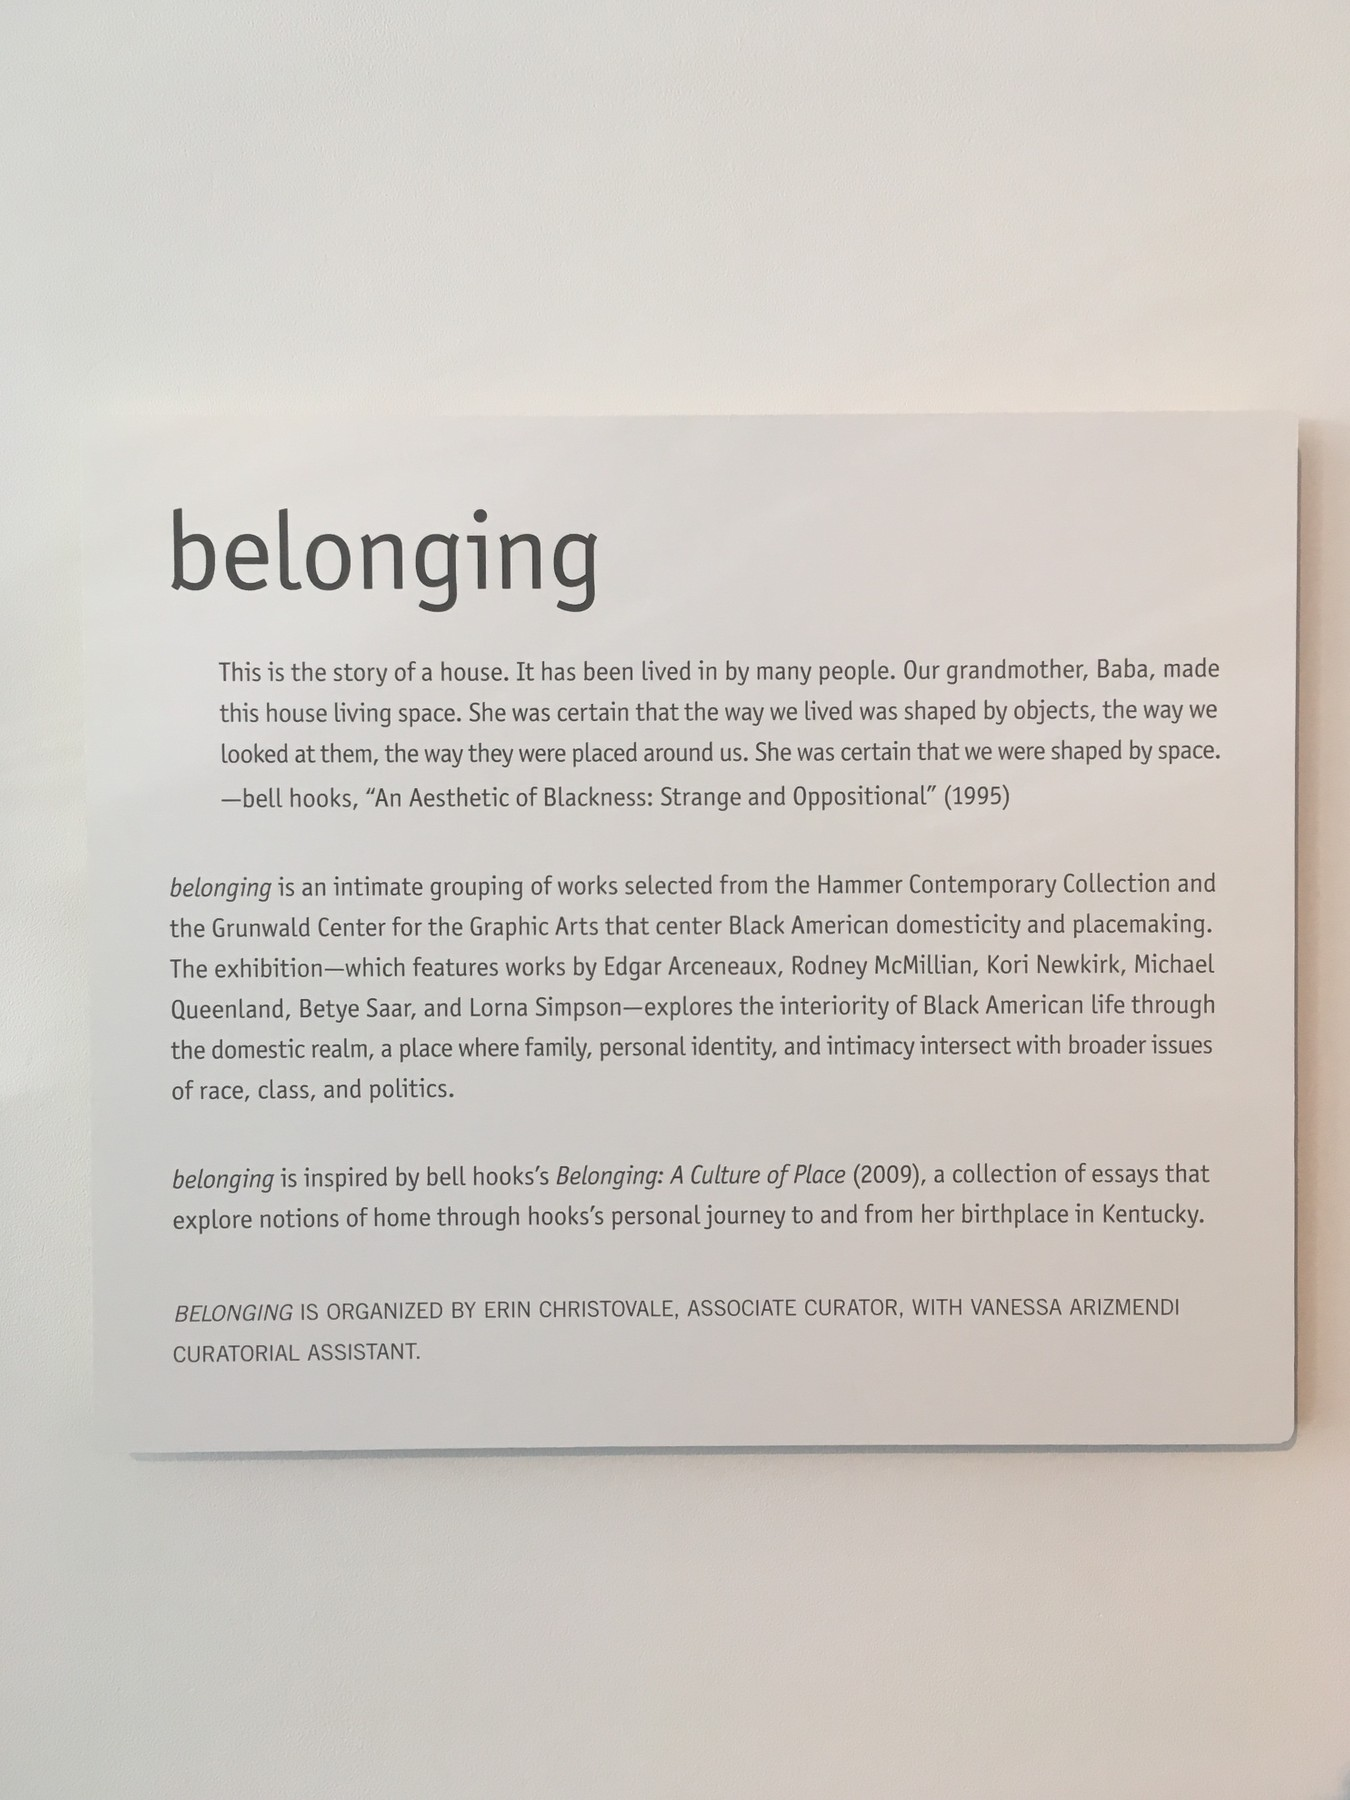 belonging1.jpg